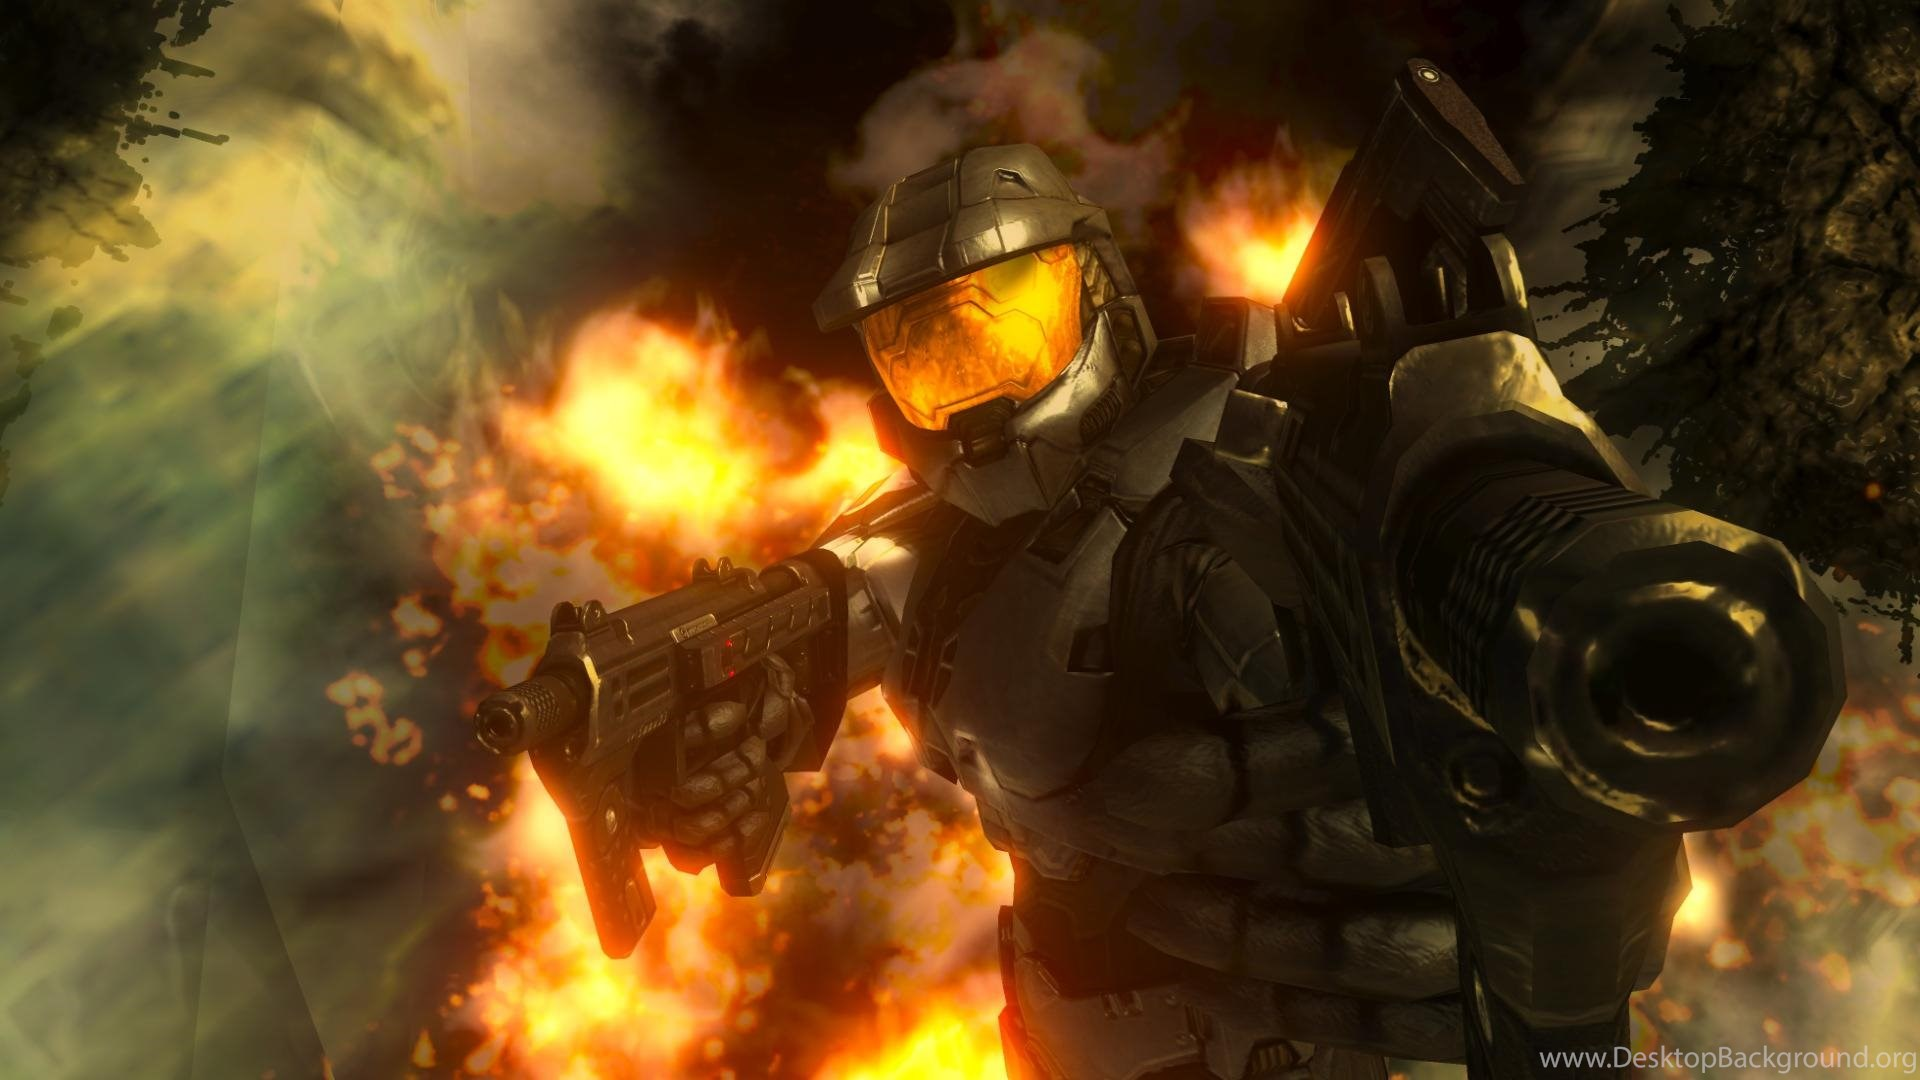 Halo 3 Master Chief Wallpapers Mobile Phones Attachment